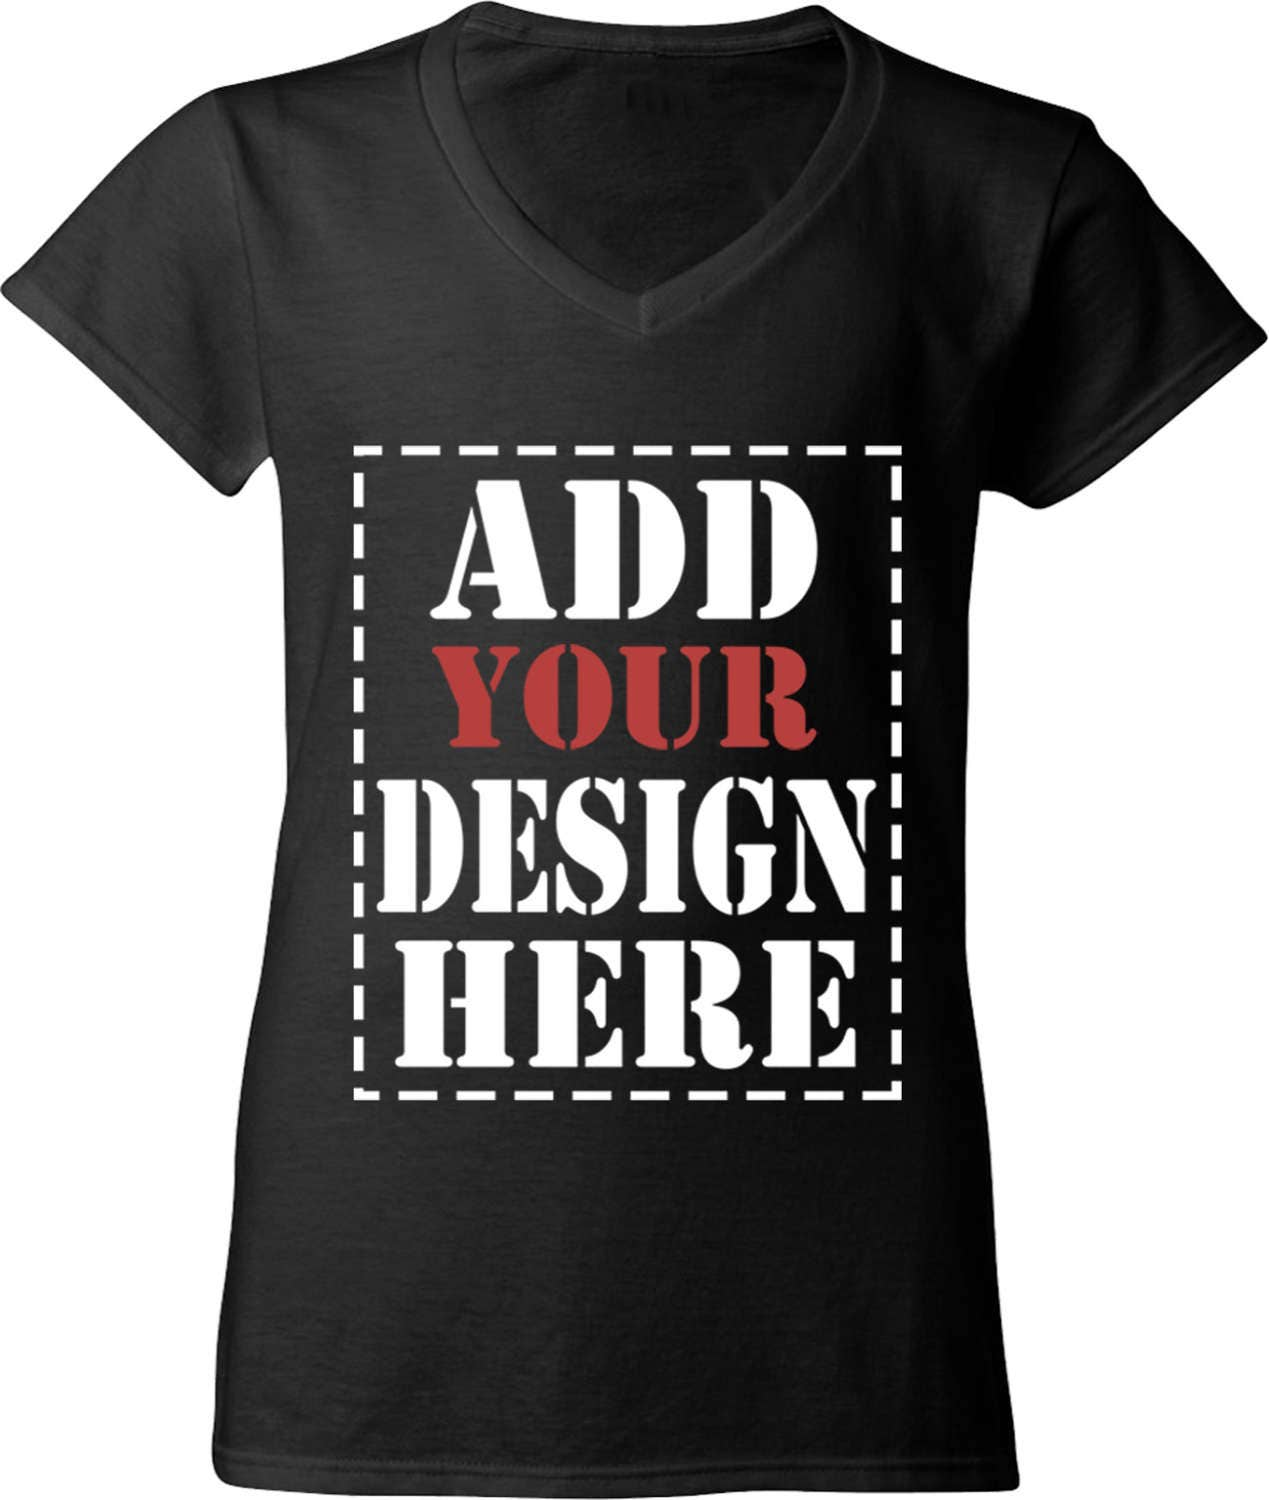 Design your own customized women 39 s v neck t shirt add for T shirt design upload picture